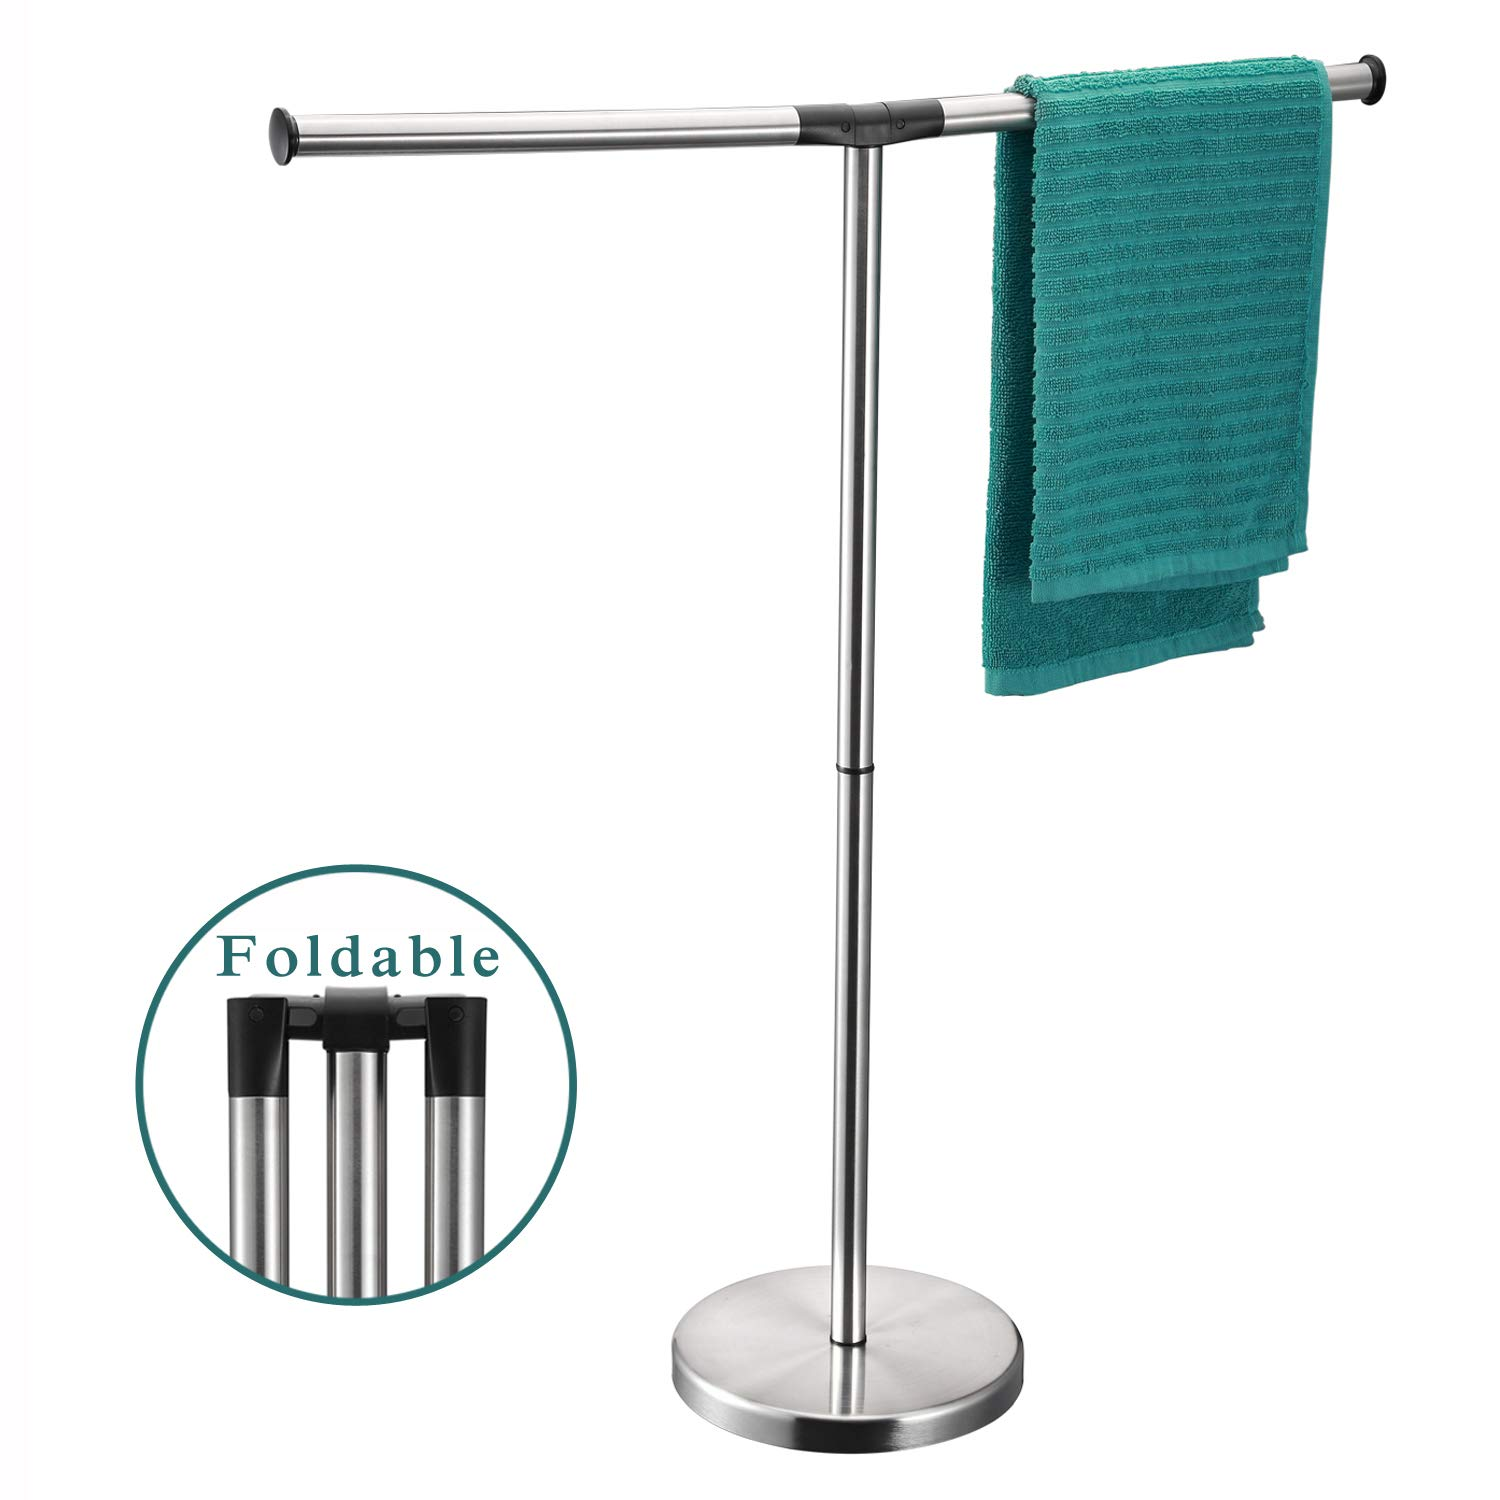 ALHAKIN Towel Rack Stand, 32 Inch Floor Free Standing T Style Stainless Steel 2 Arms Bathroom Towel Holder by ALHAKIN